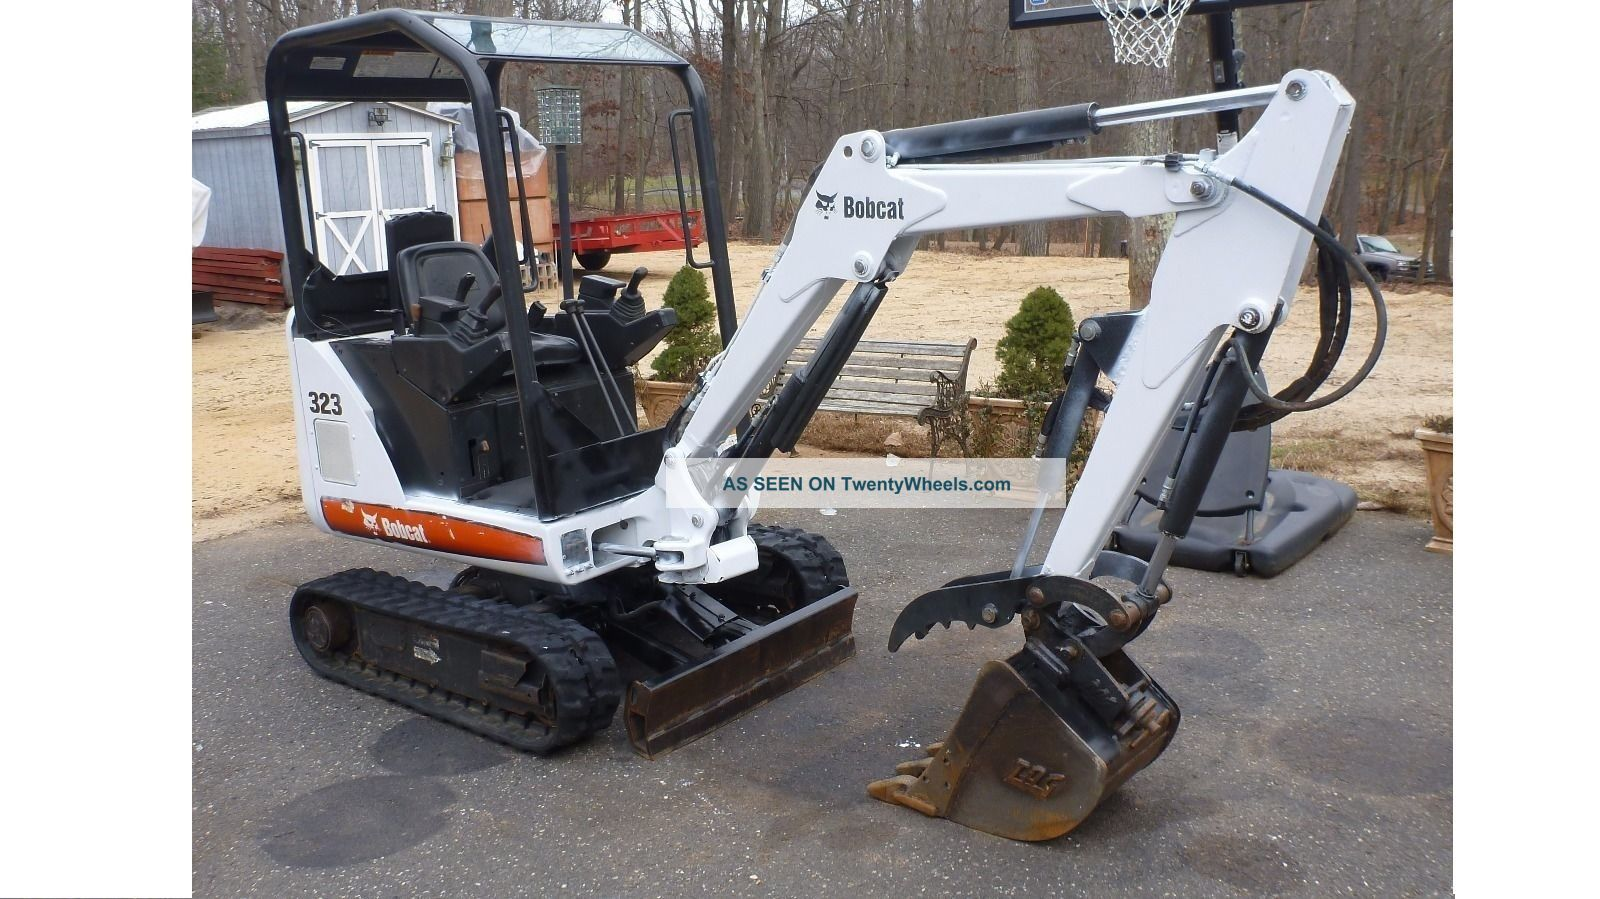 2008 Bobcat 323 Mini Excavator With Hydraulic Thumb No Issues 2 Speed Excavators photo